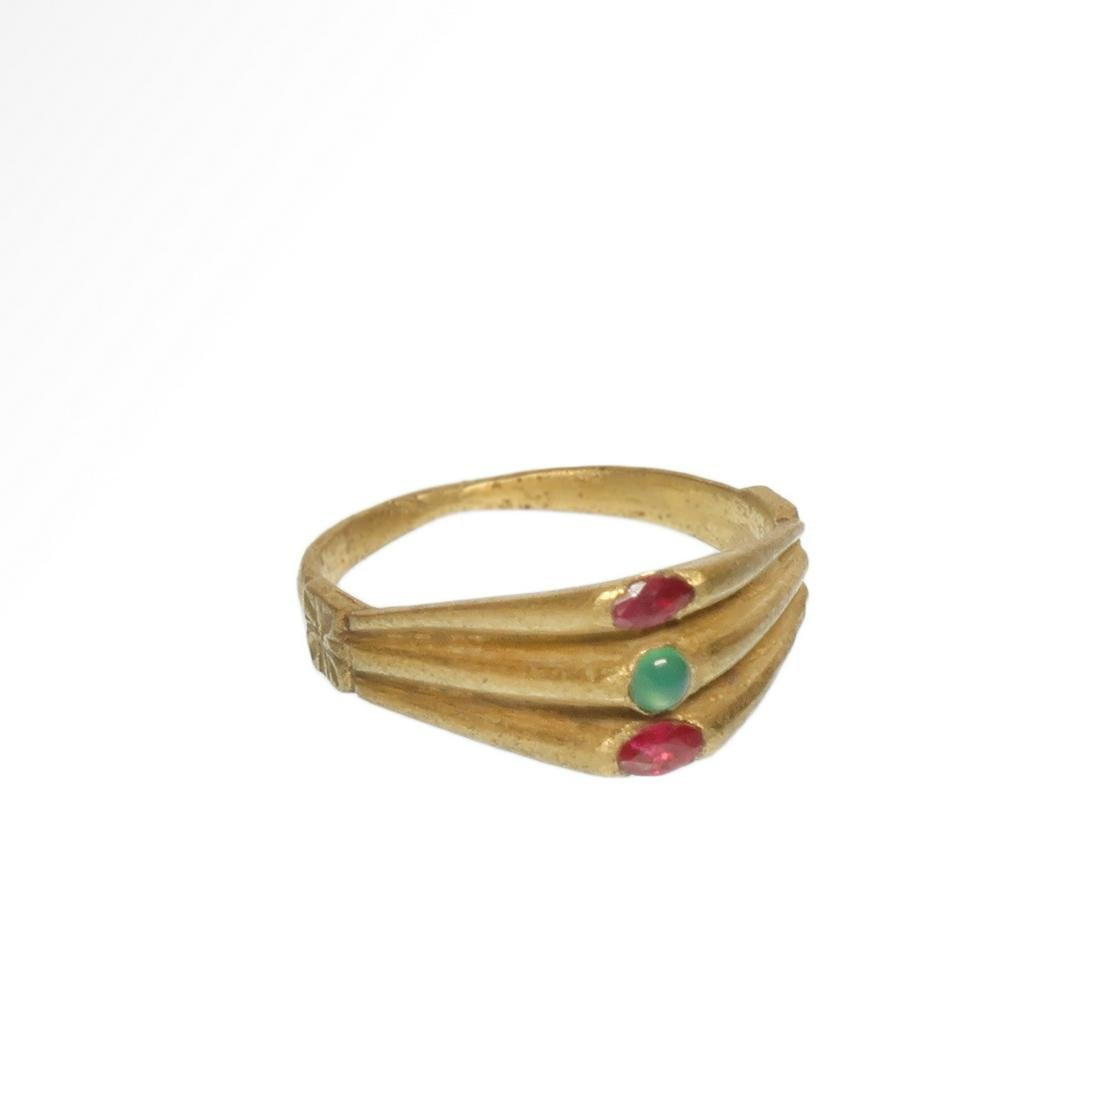 Medieval Triple Gold Ring with Rubies and Emerald,